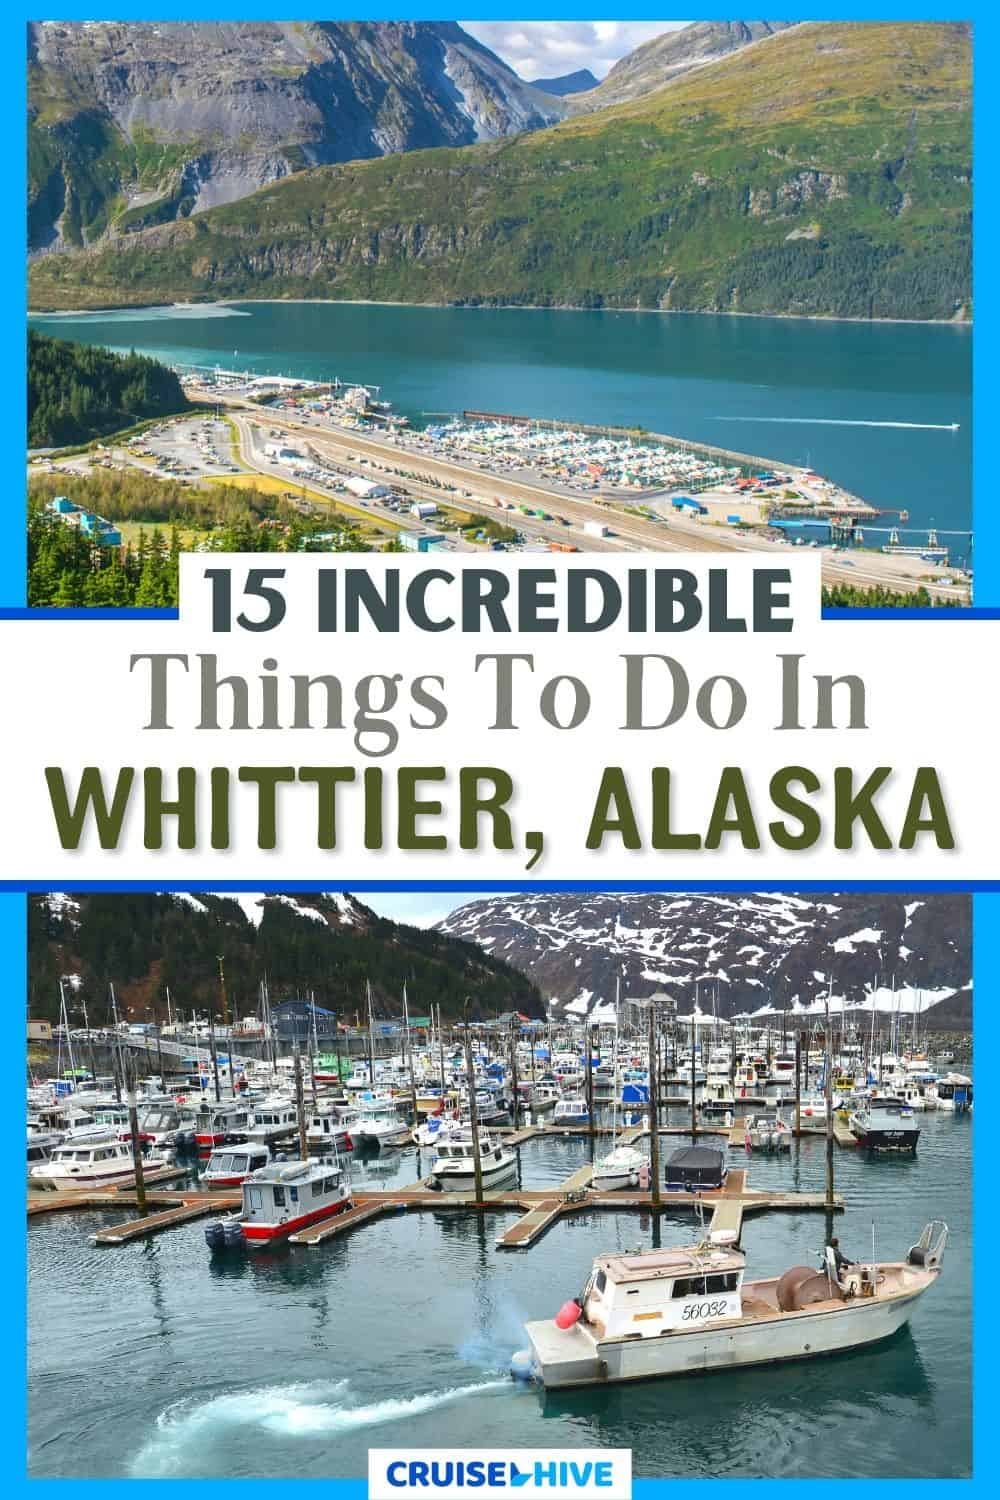 Things to Do in Whittier Alaska